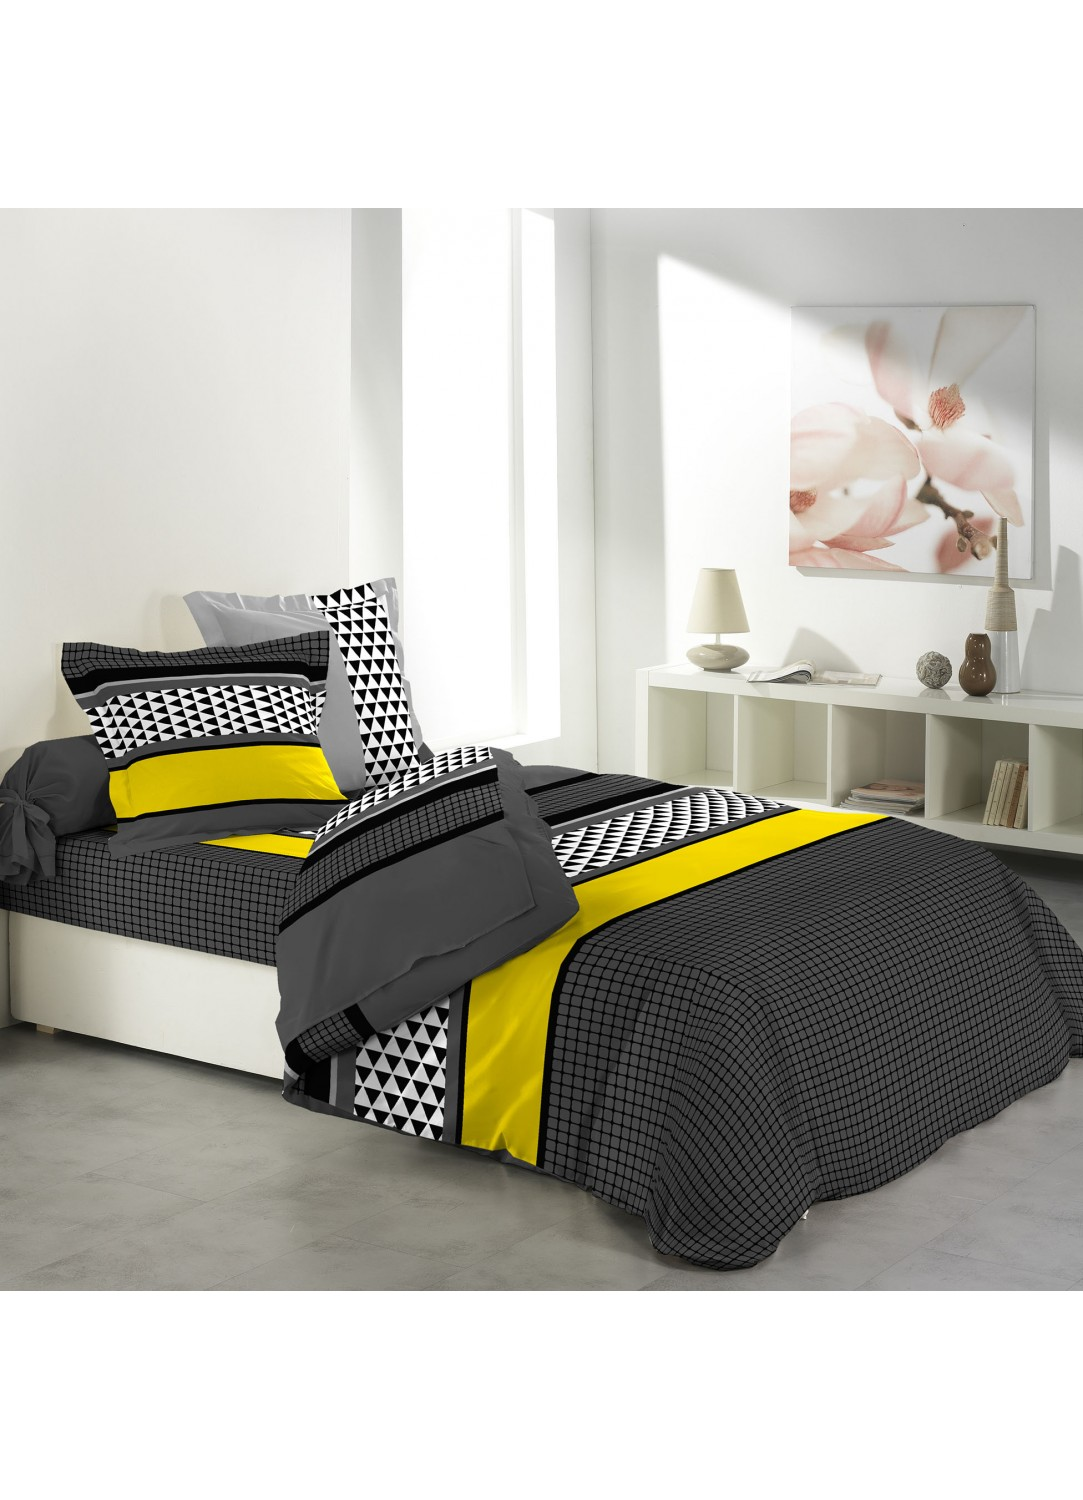 parure drap 2 personnes parure de drap parure de draps. Black Bedroom Furniture Sets. Home Design Ideas